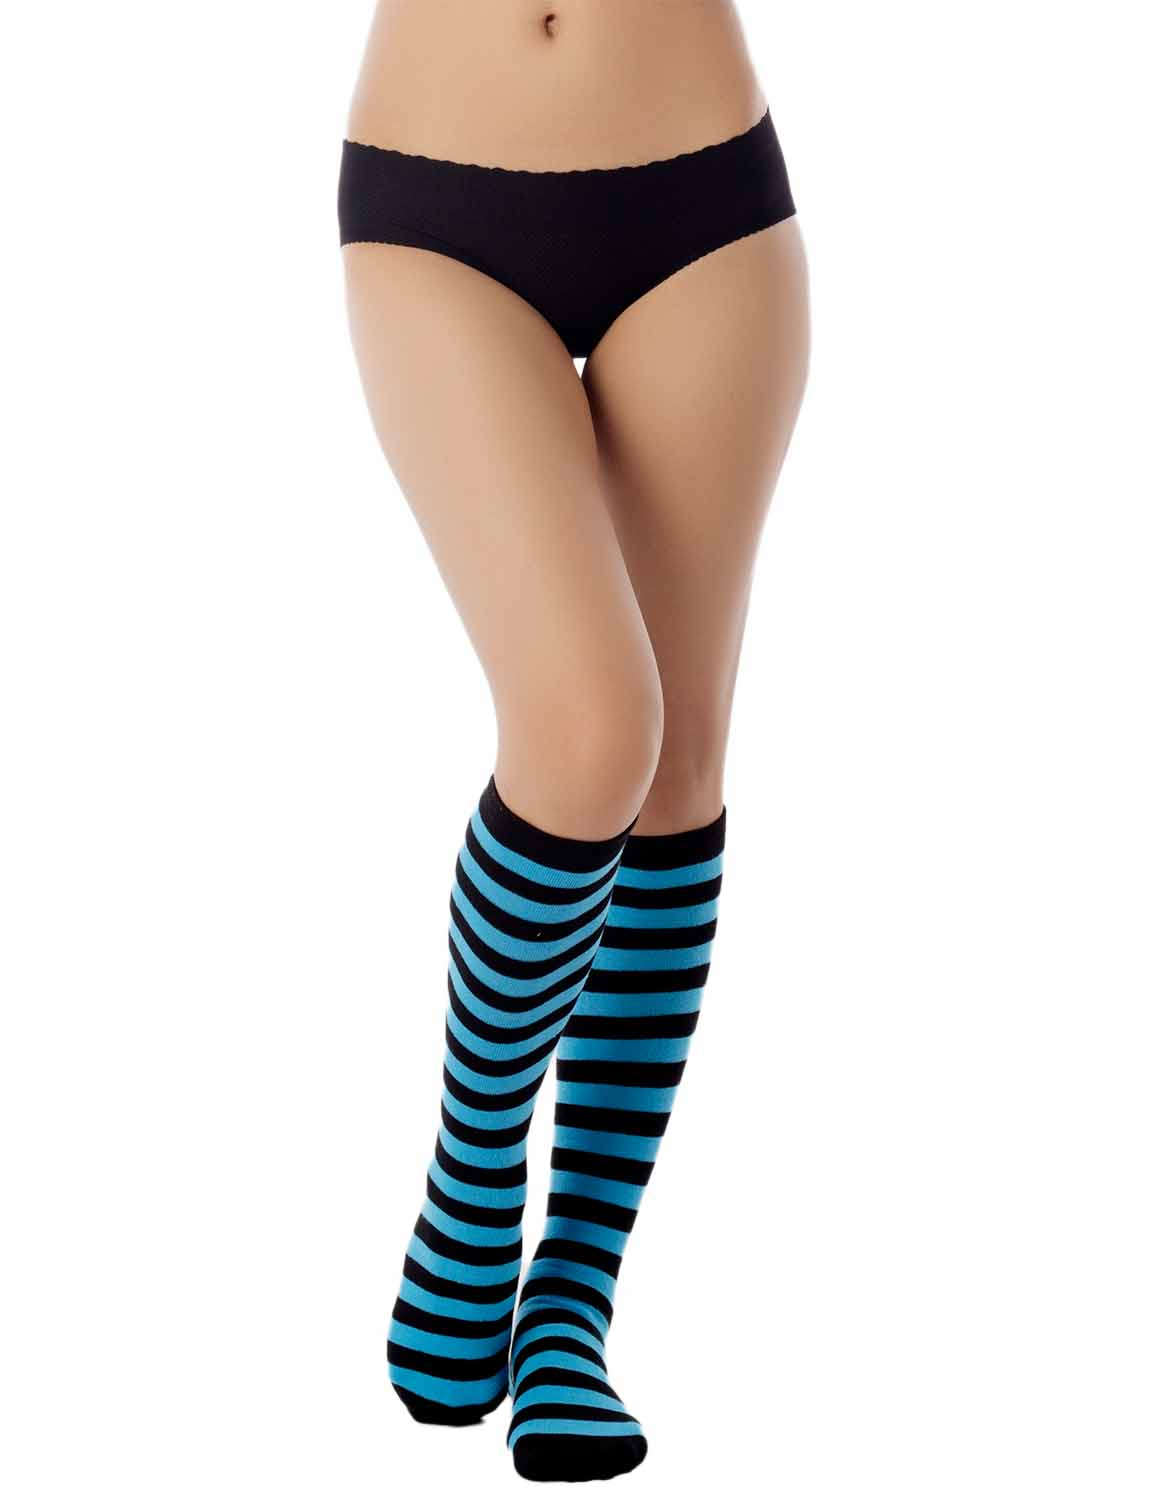 Women's Sports Football Style Zebra Stripe Long Stocking Knee High  Socks, Size: One Size, Turquoise